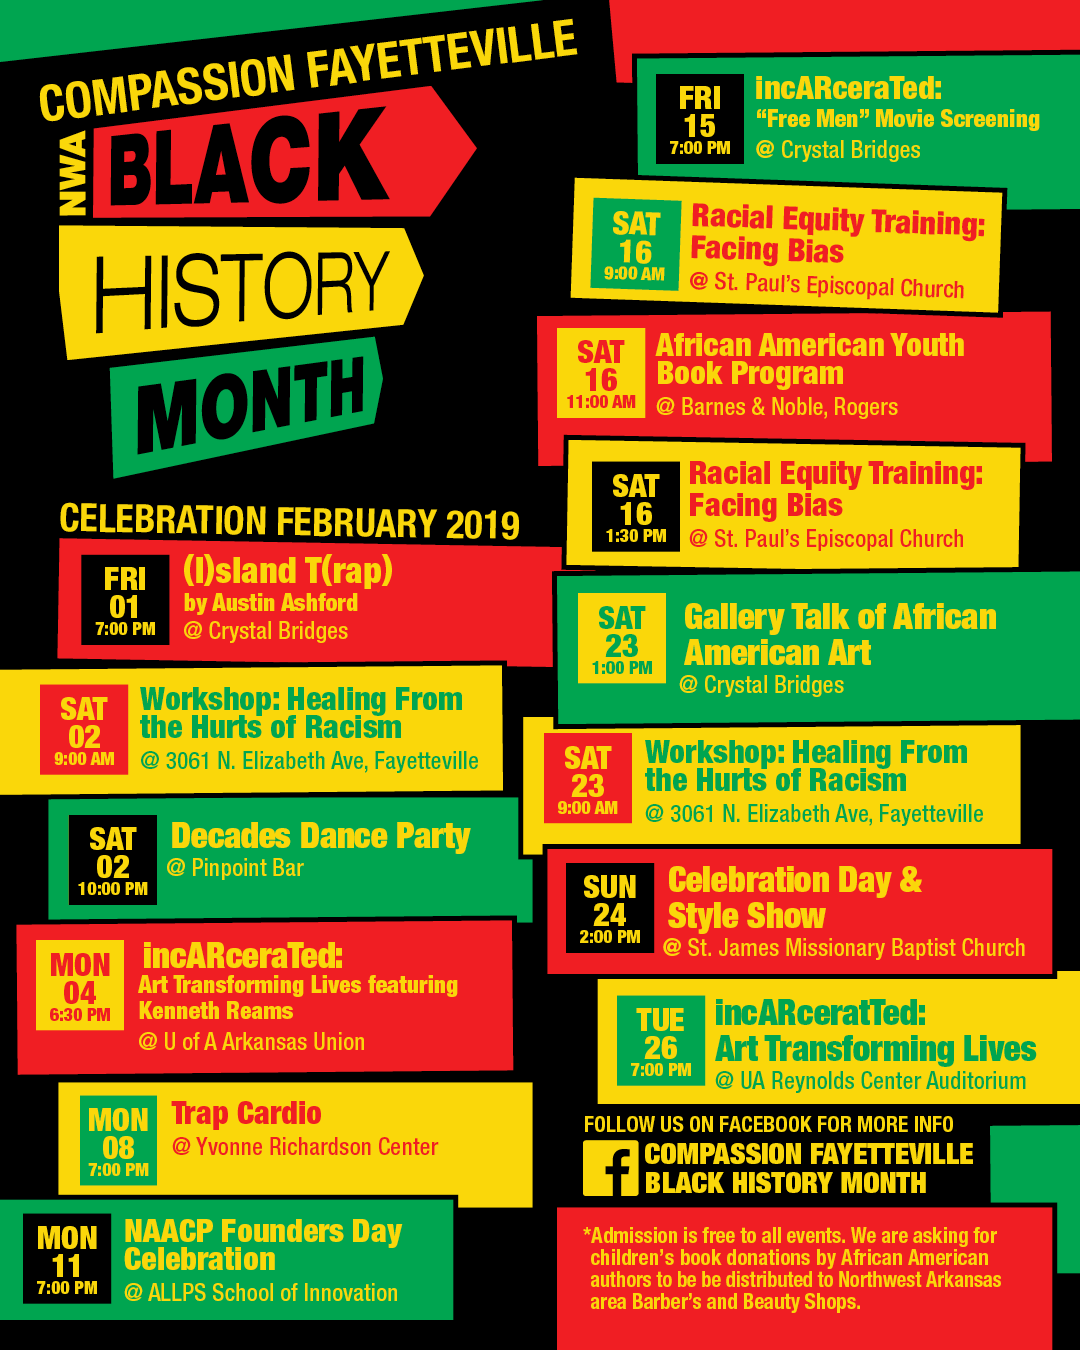 Black History Month Events Planned In Fayetteville